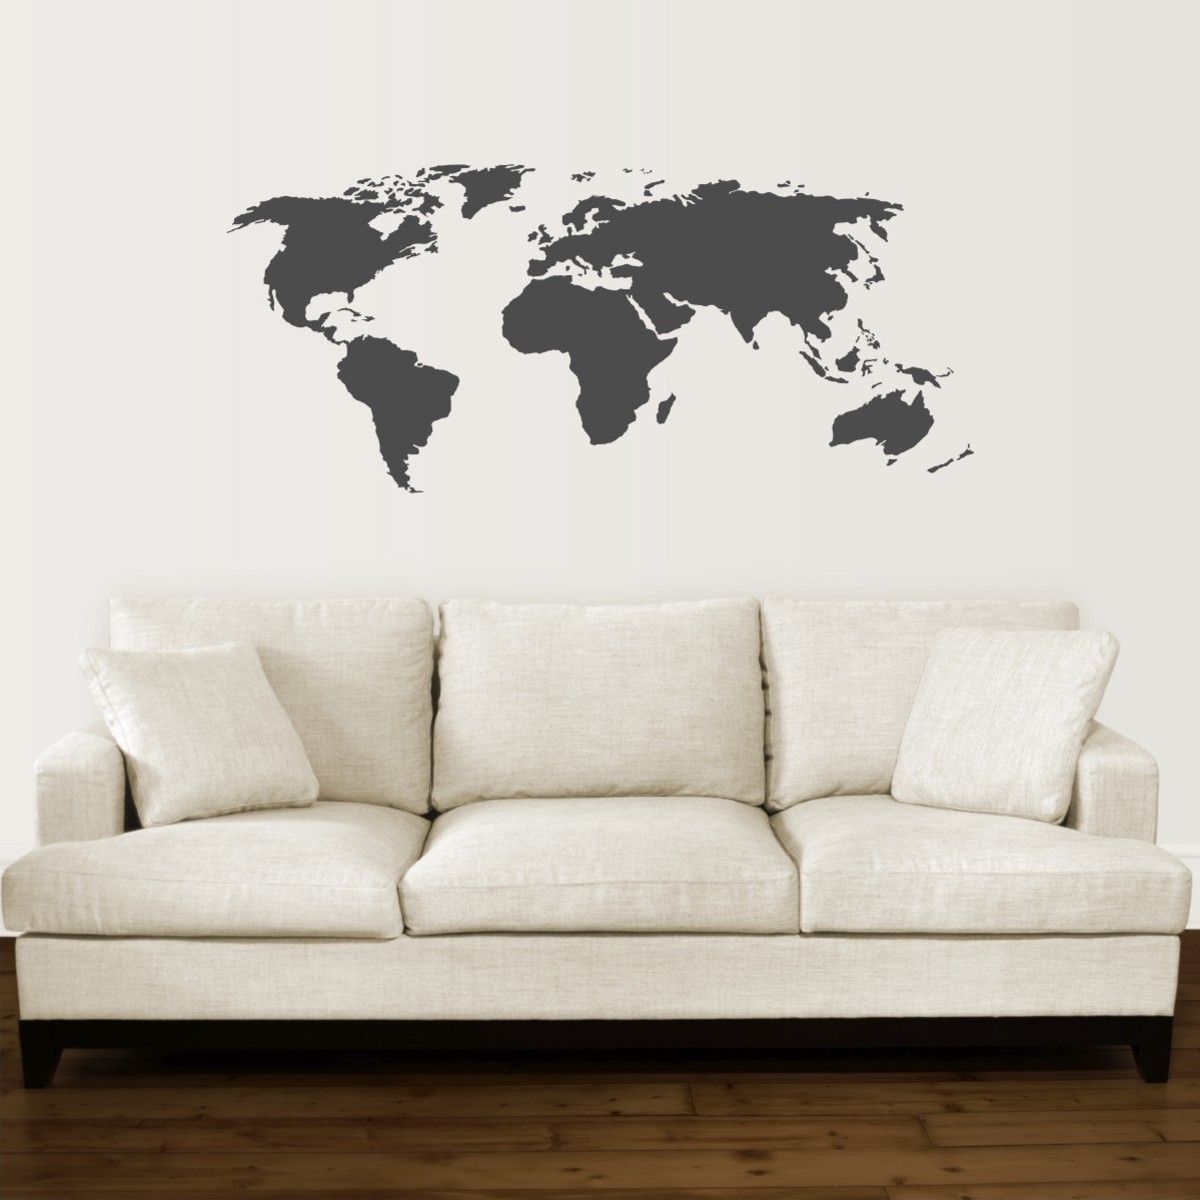 17 Cool Ideas For World Map Wall Art – Live Diy Ideas In Most Recently Released Maps Wall Art (View 13 of 20)